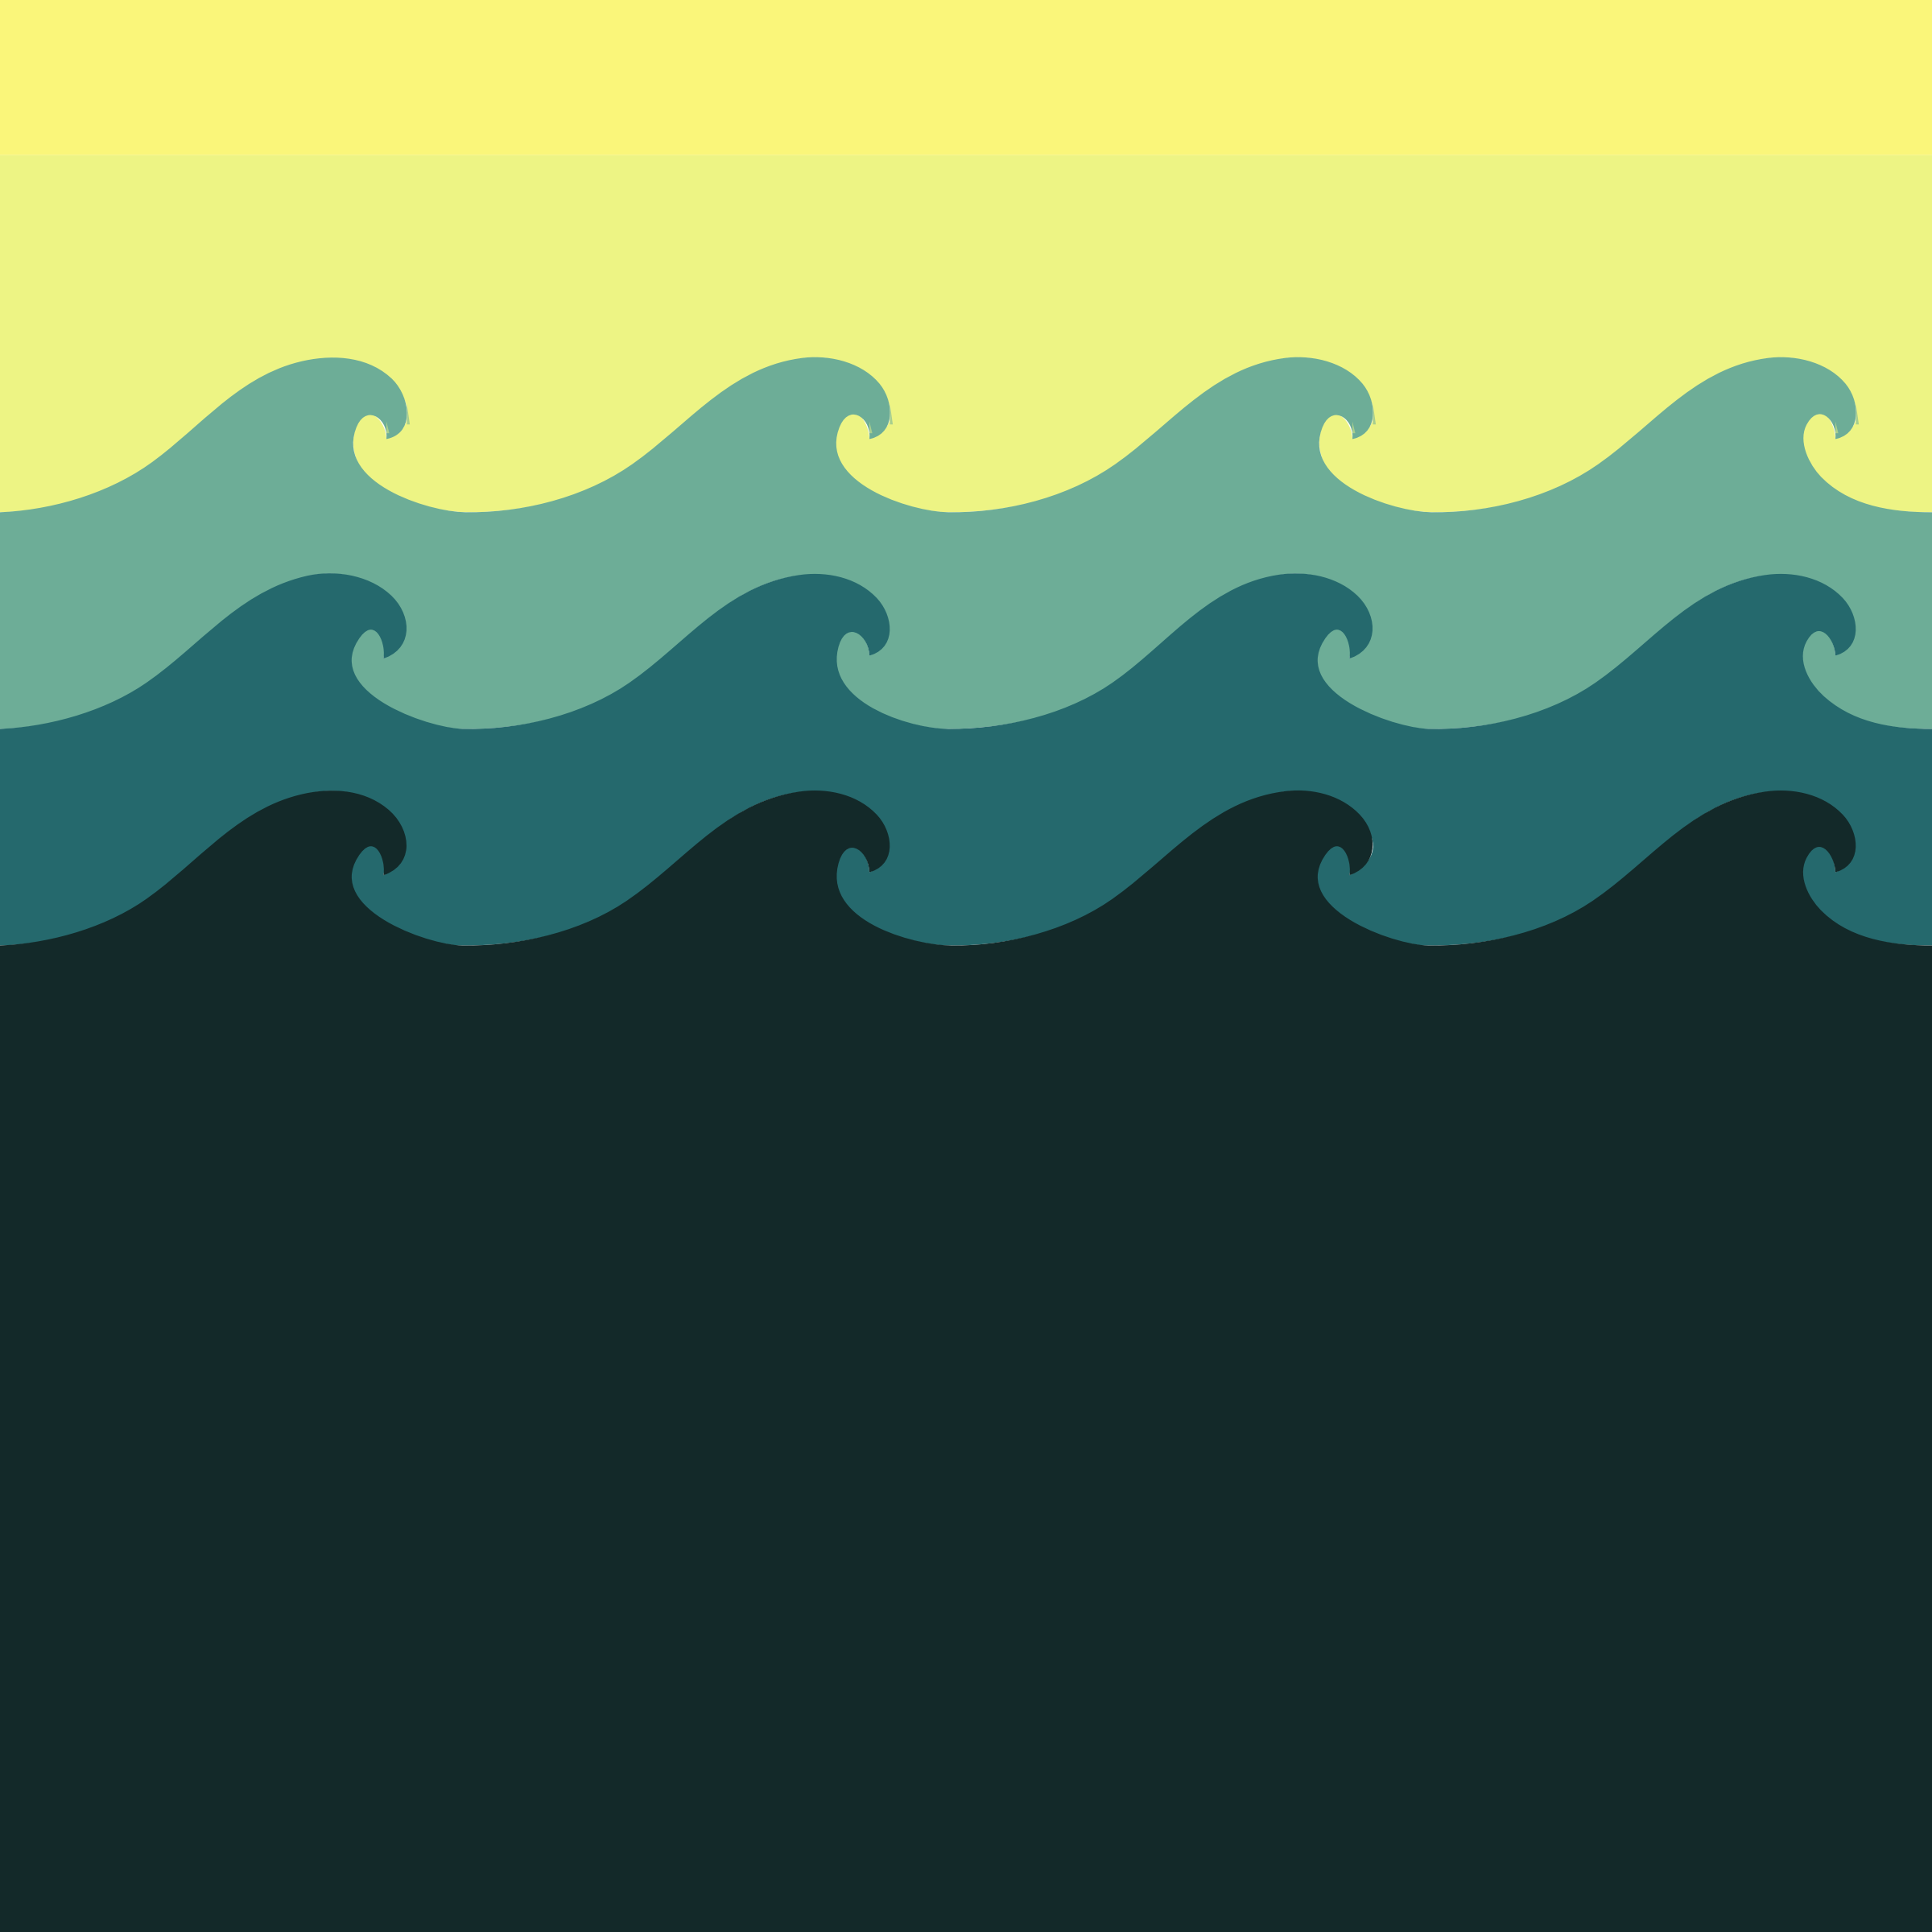 Weaves clipart wave pattern Clipart Pattern Wave Pattern Tiled